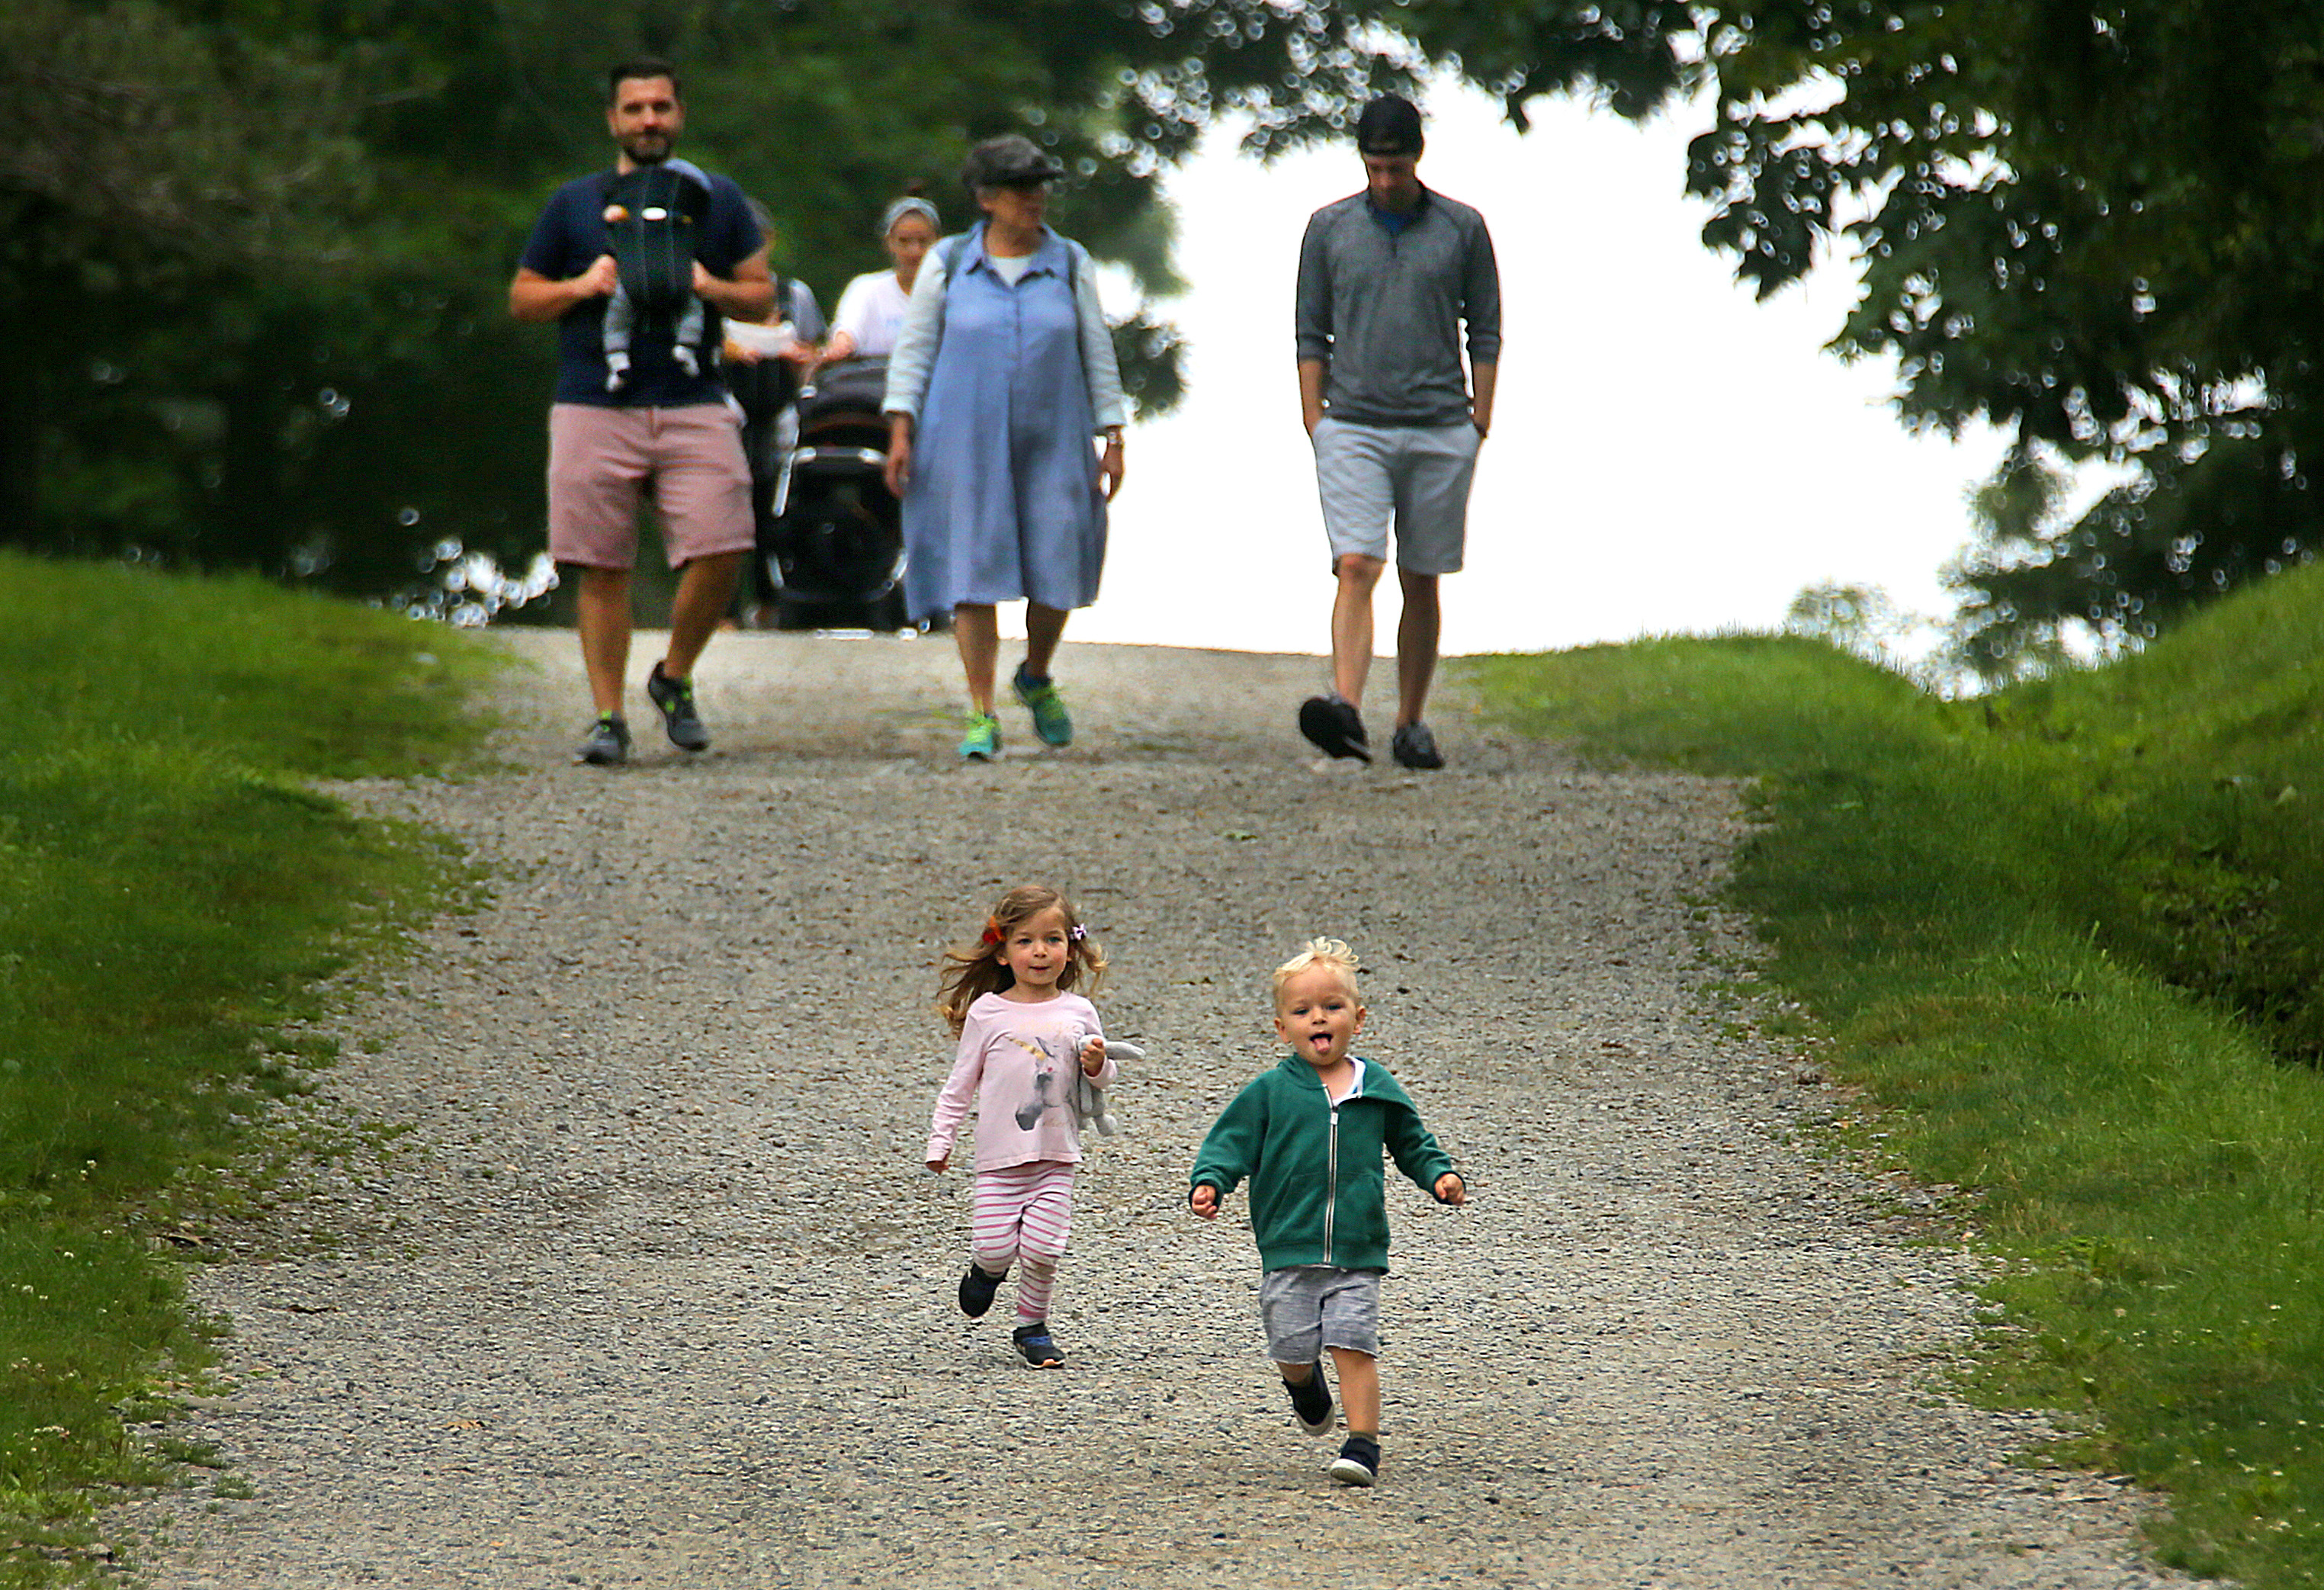 Maya Allen (left) and her cousin Max Wolff, both 2 1/2 from Montclair, NJ, run down a hill past their families.